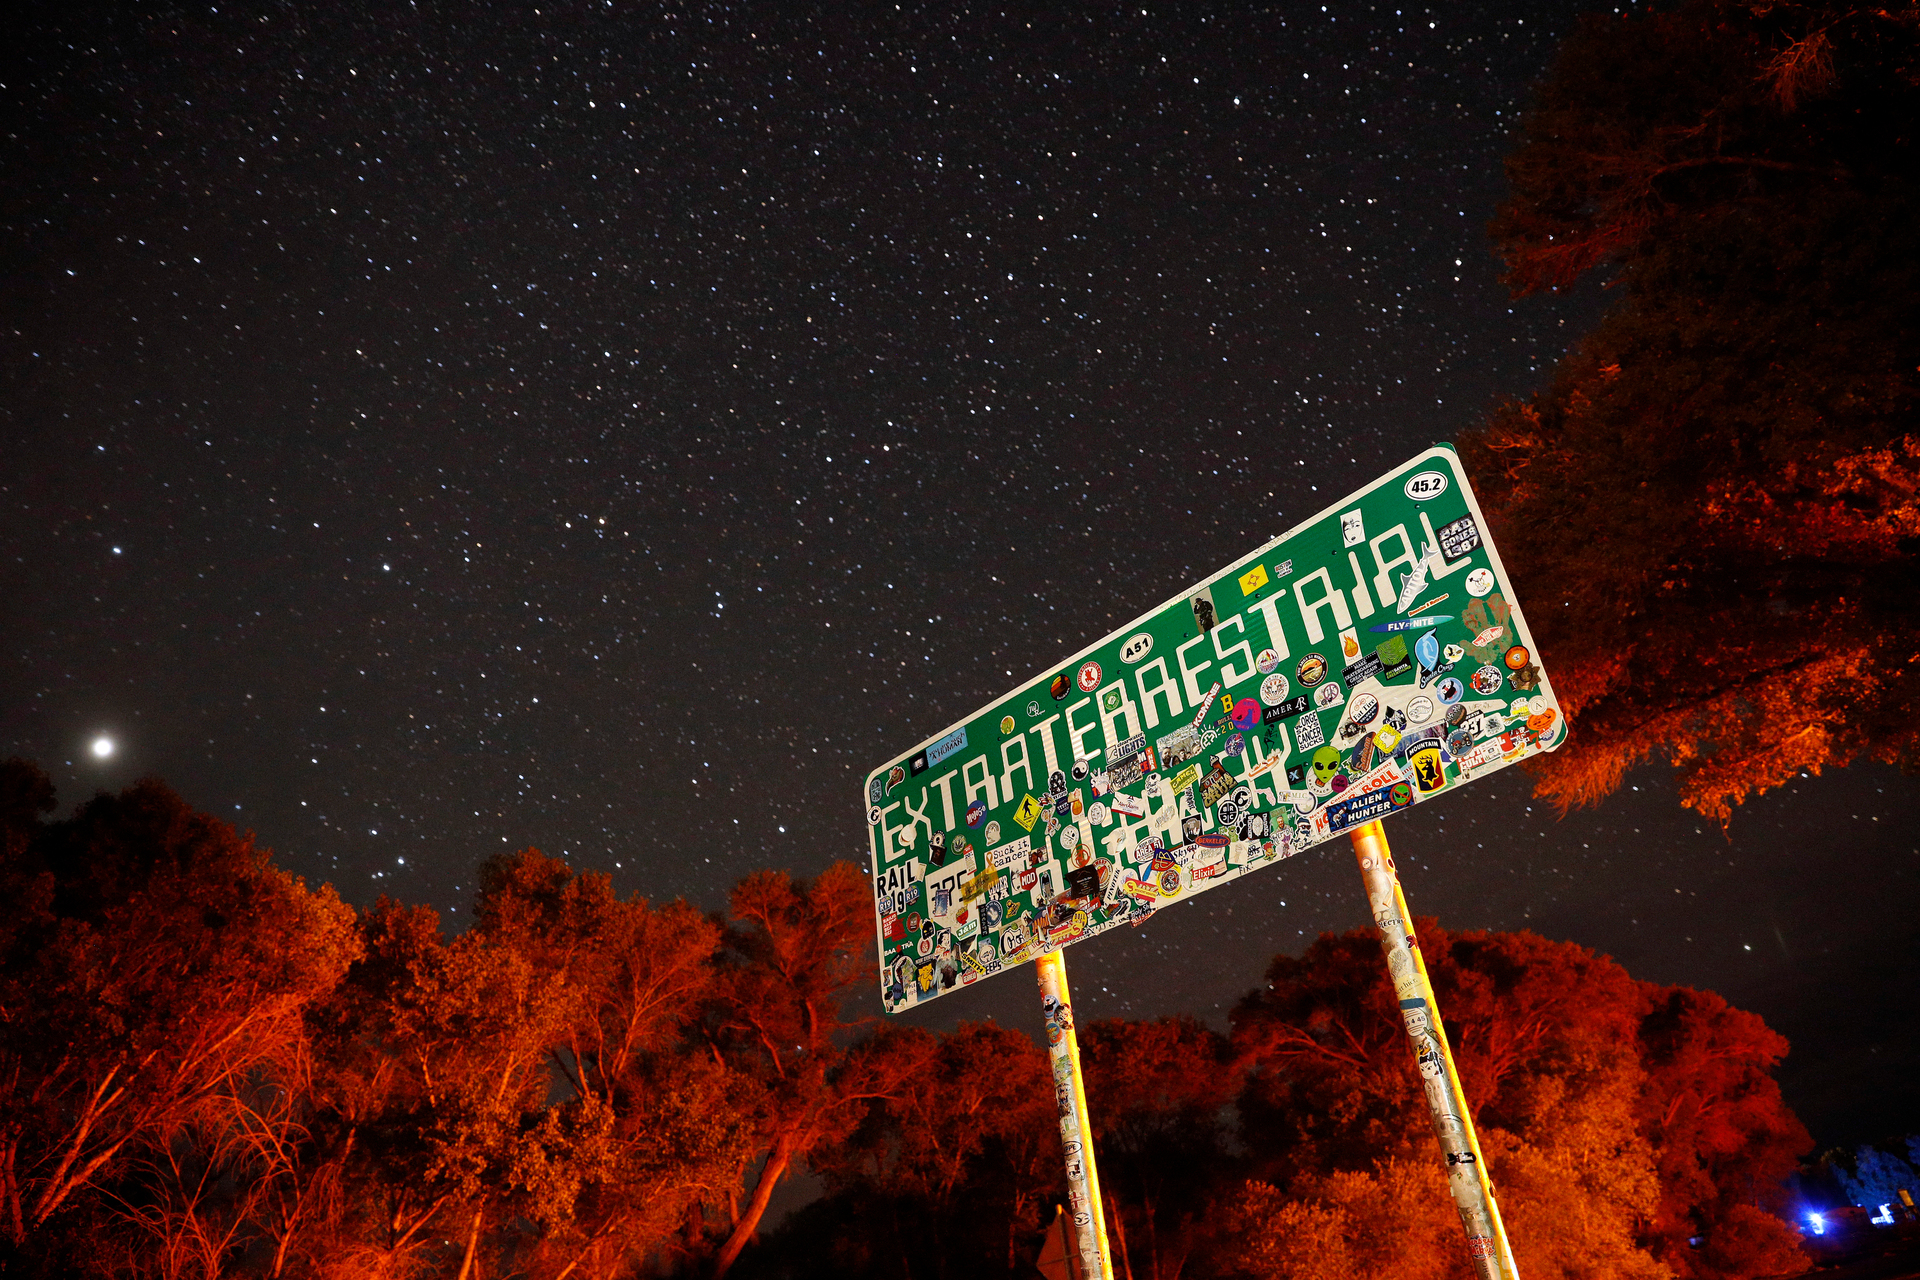 Storm area 51: Alien tourists prompt Nevada emergency crowd planning